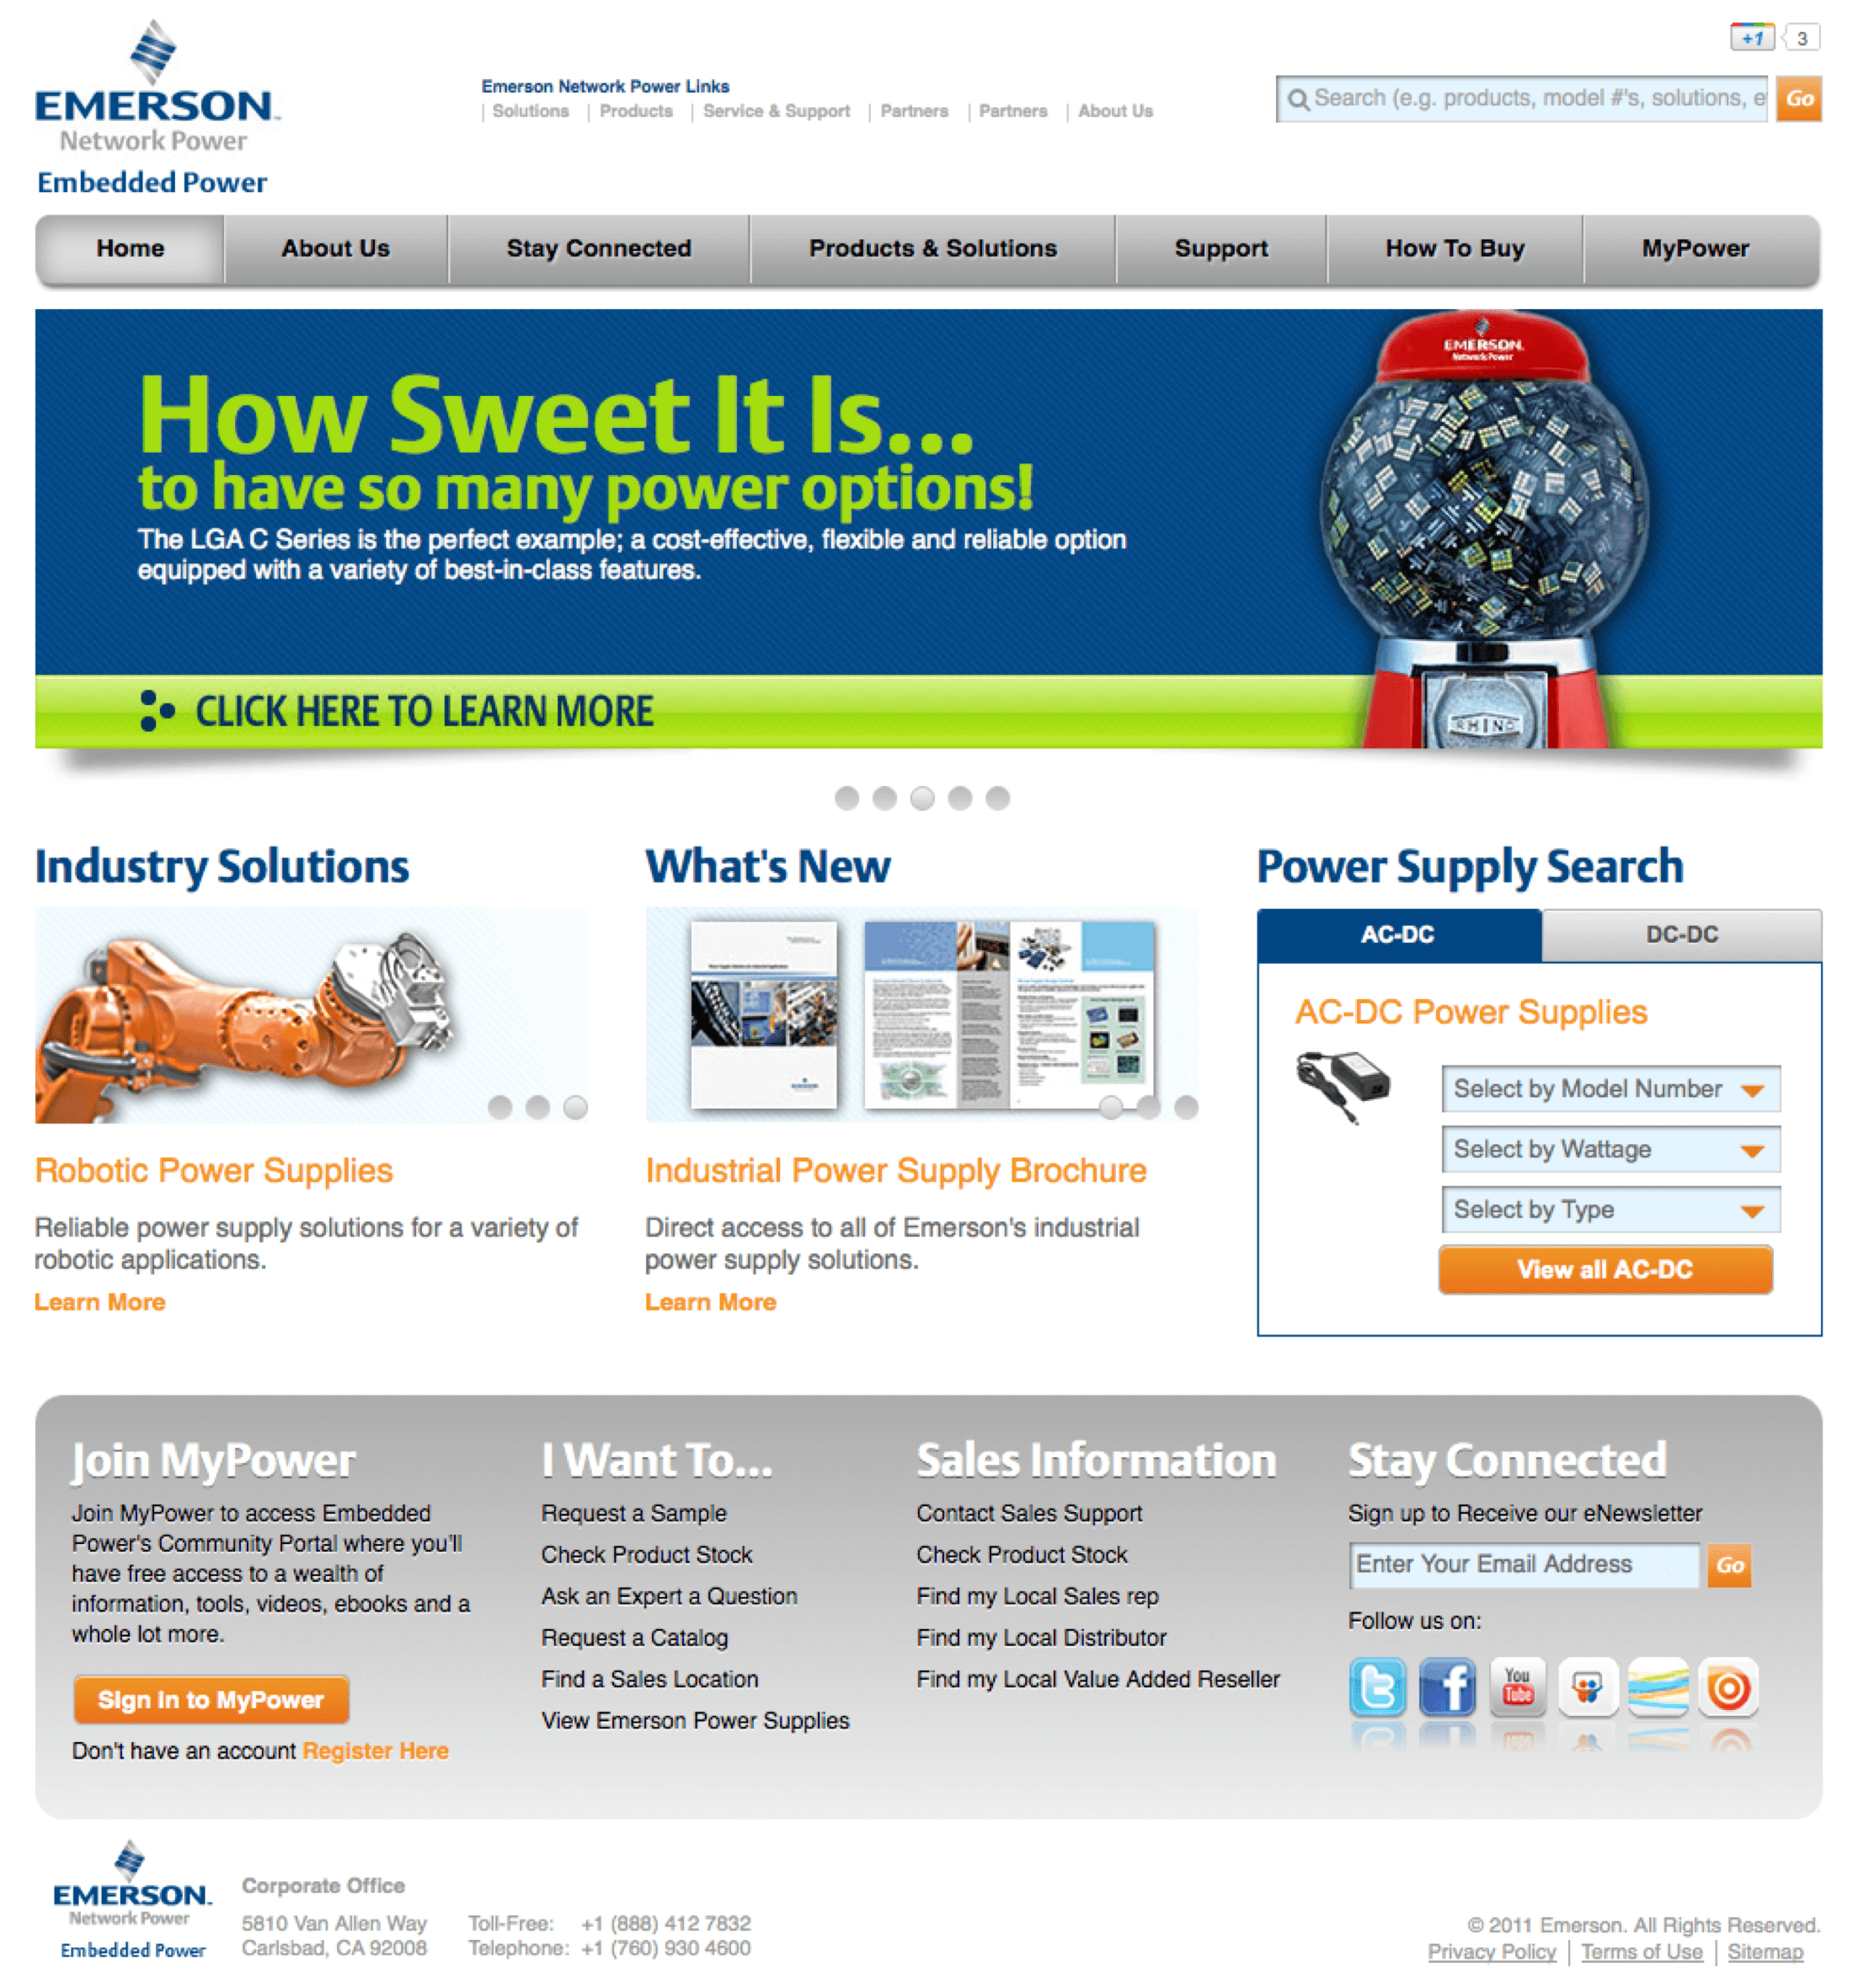 emerson-embedded-ac-dc-power-supplies-website-design-home-page-2